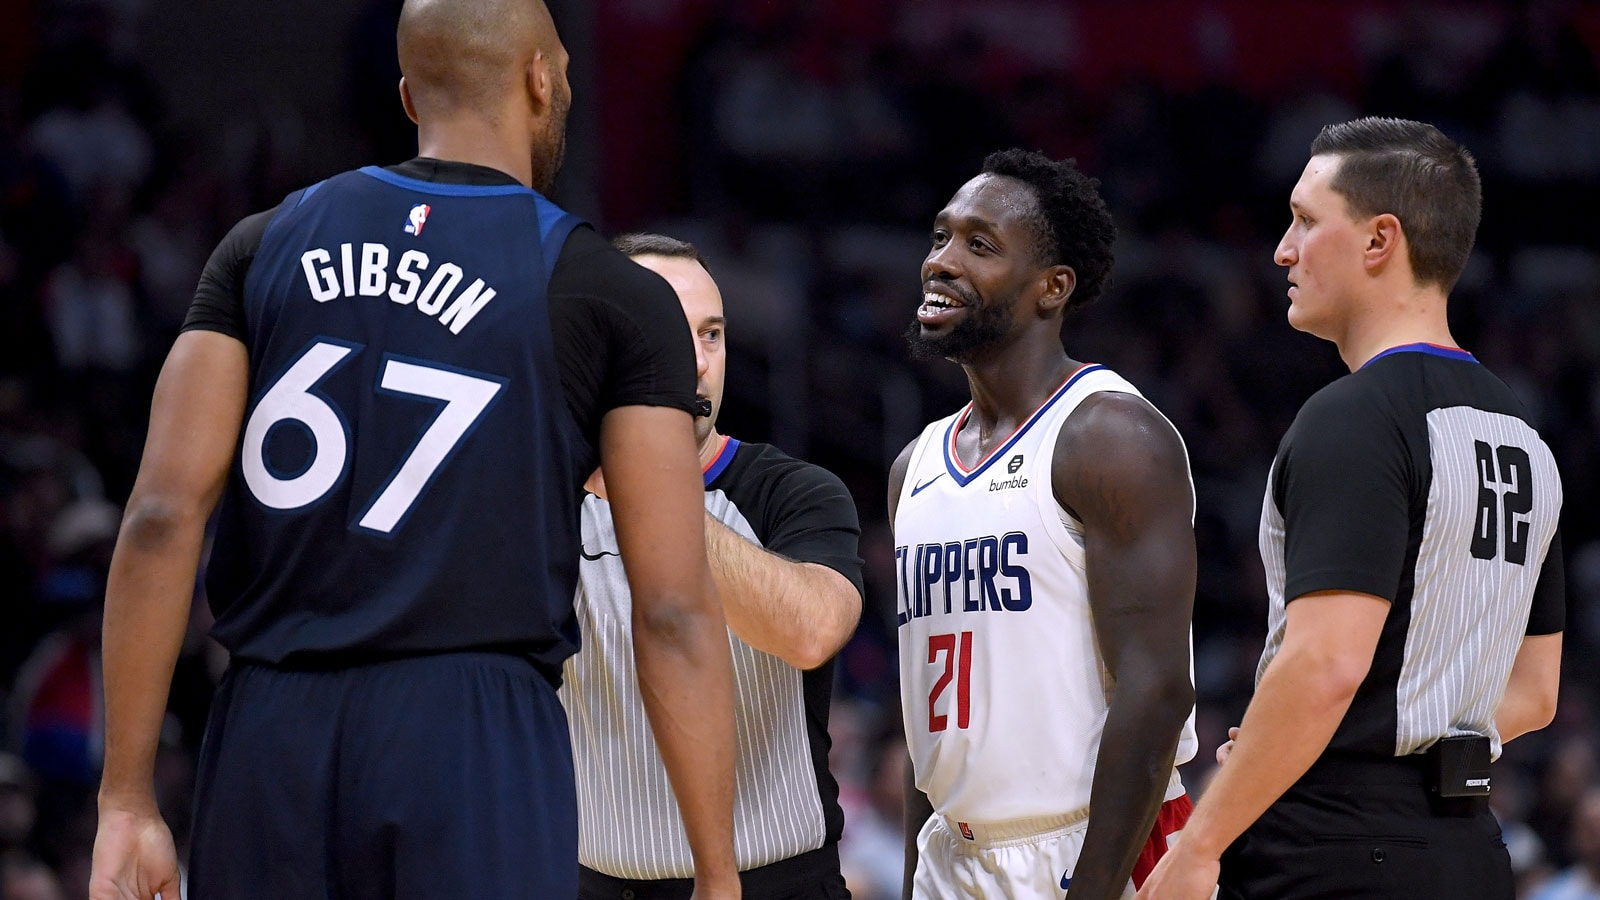 Referees break get between Taj Gibson #67 of the Minnesota Timberwolves and Patrick Beverley #21 of the LA Clippers after a foul during a 120-109 Clipper win at Staples Center on November 5, 2018 in Los Angeles, California.